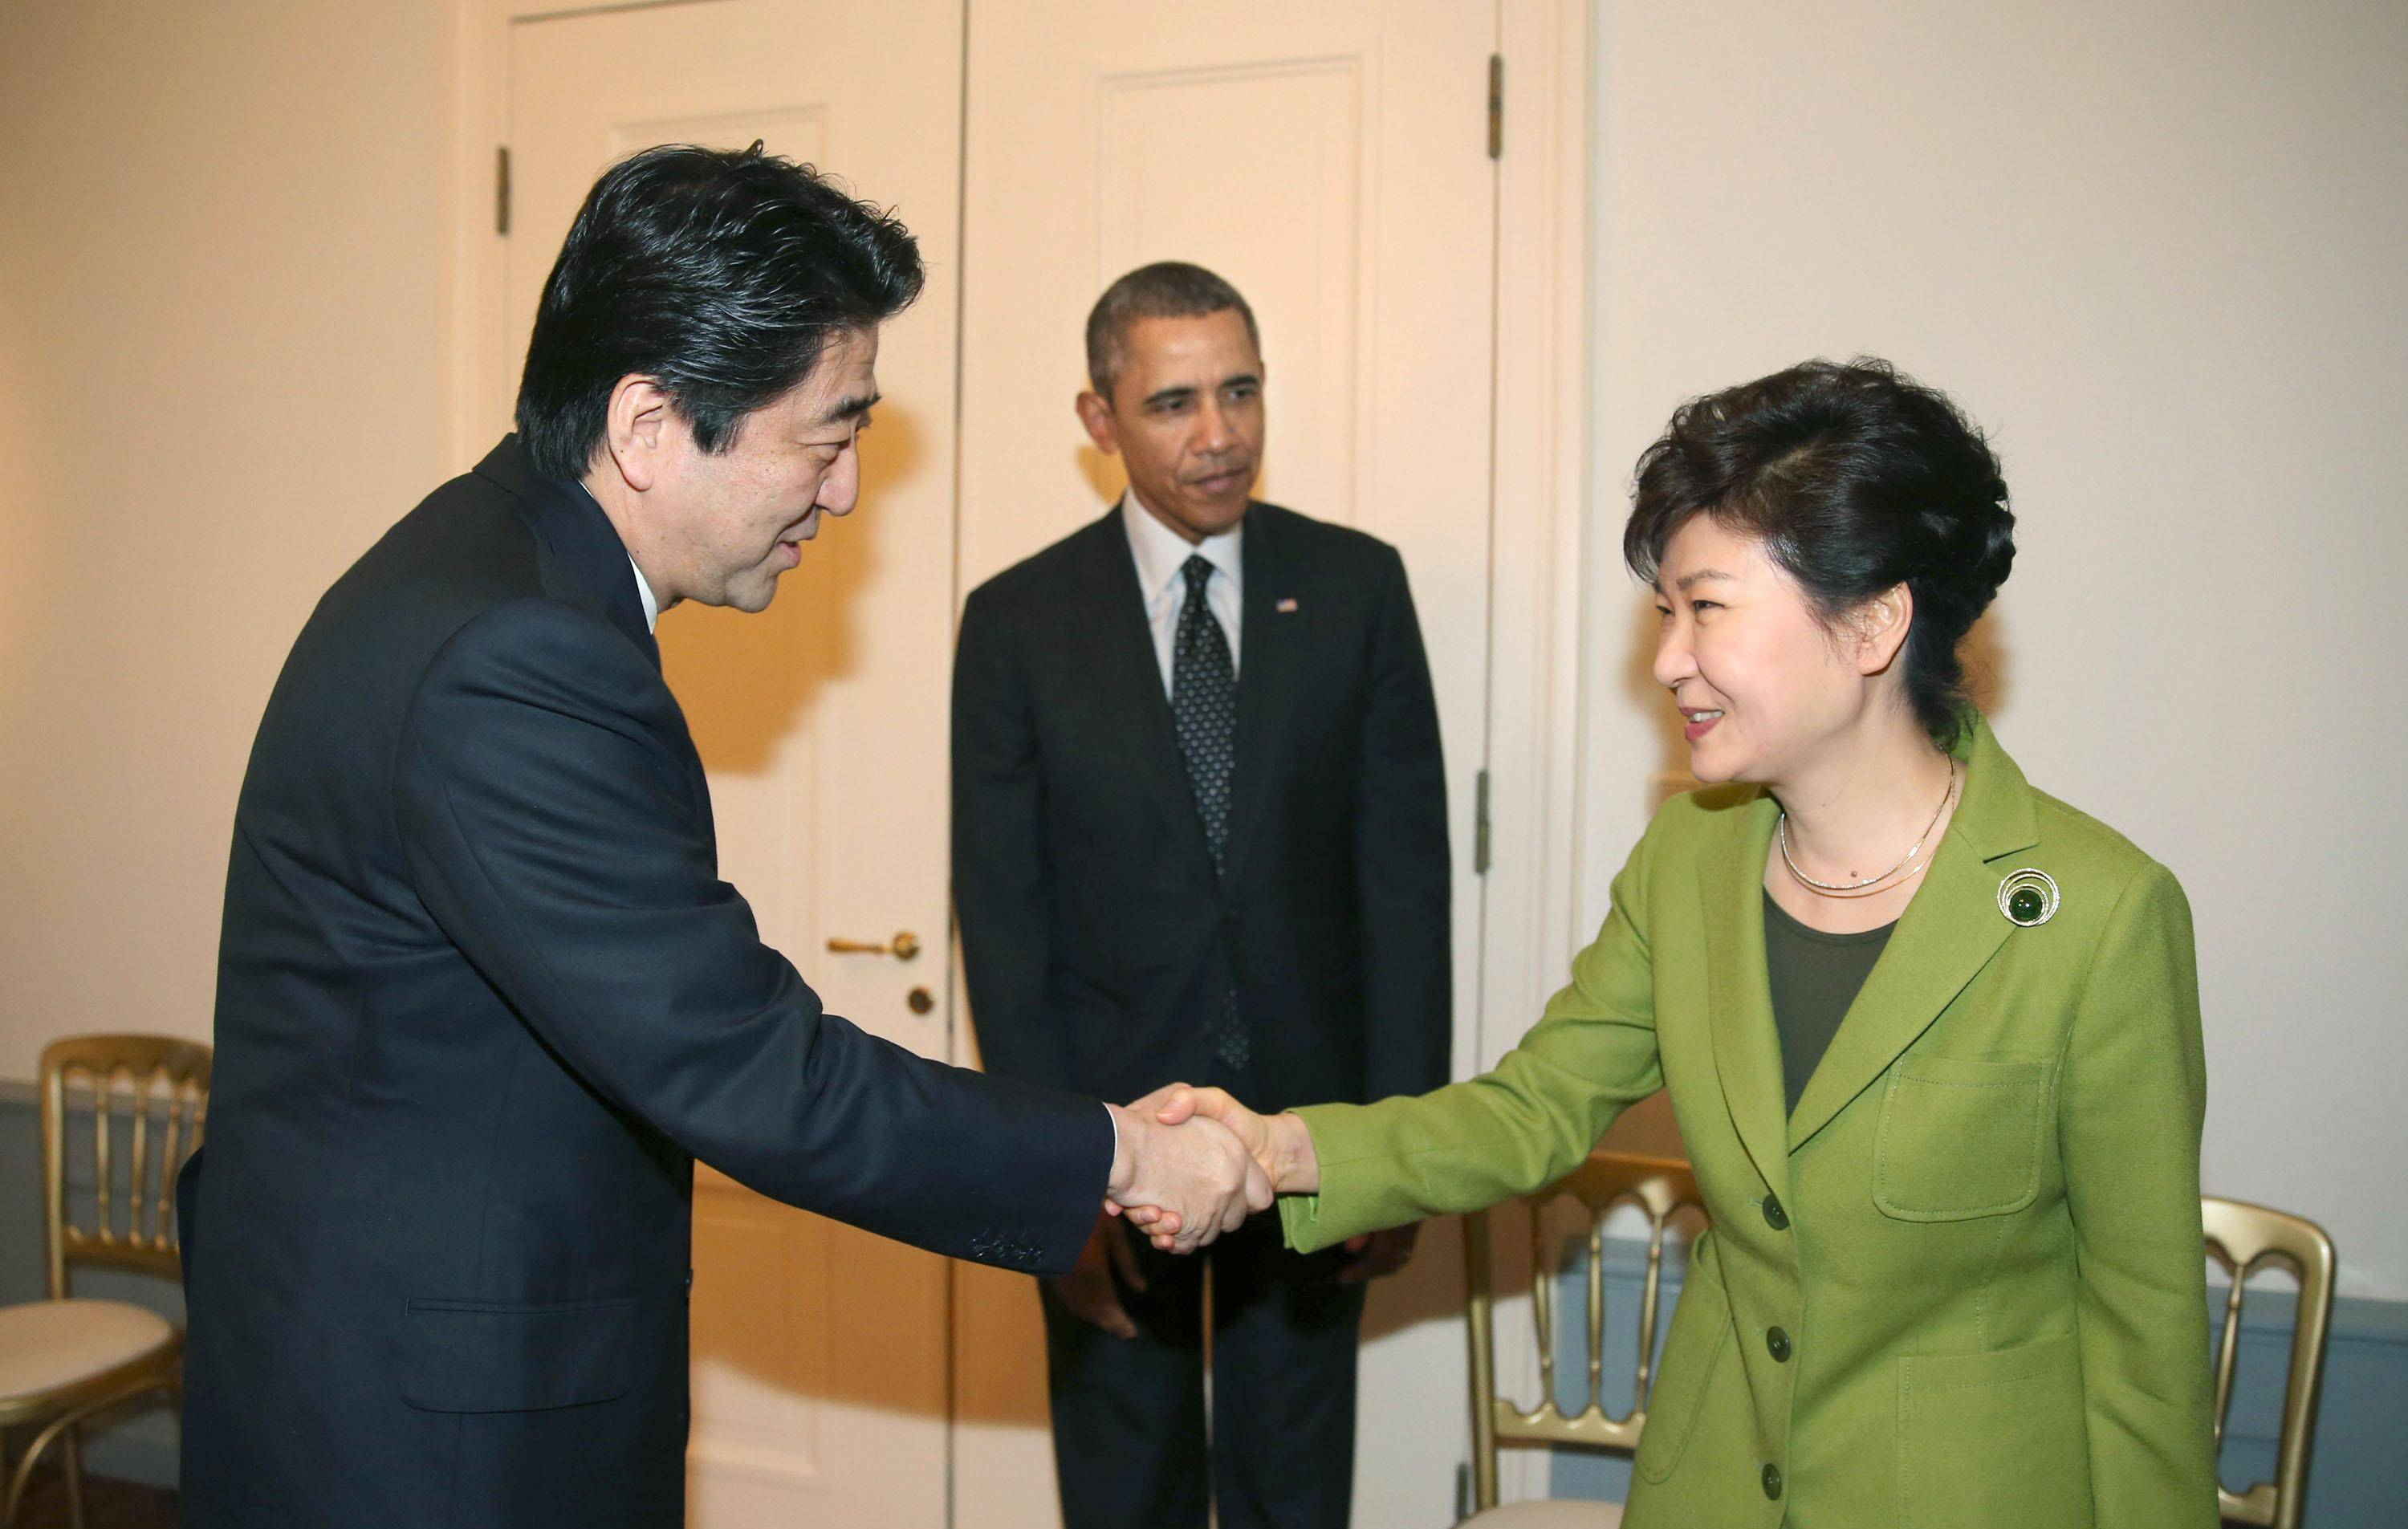 Prime Minister Shinzo Abe shakes hands with South Korean President Park Geun-hye on Tuesday in The Hague. | YONHAP/KYODO